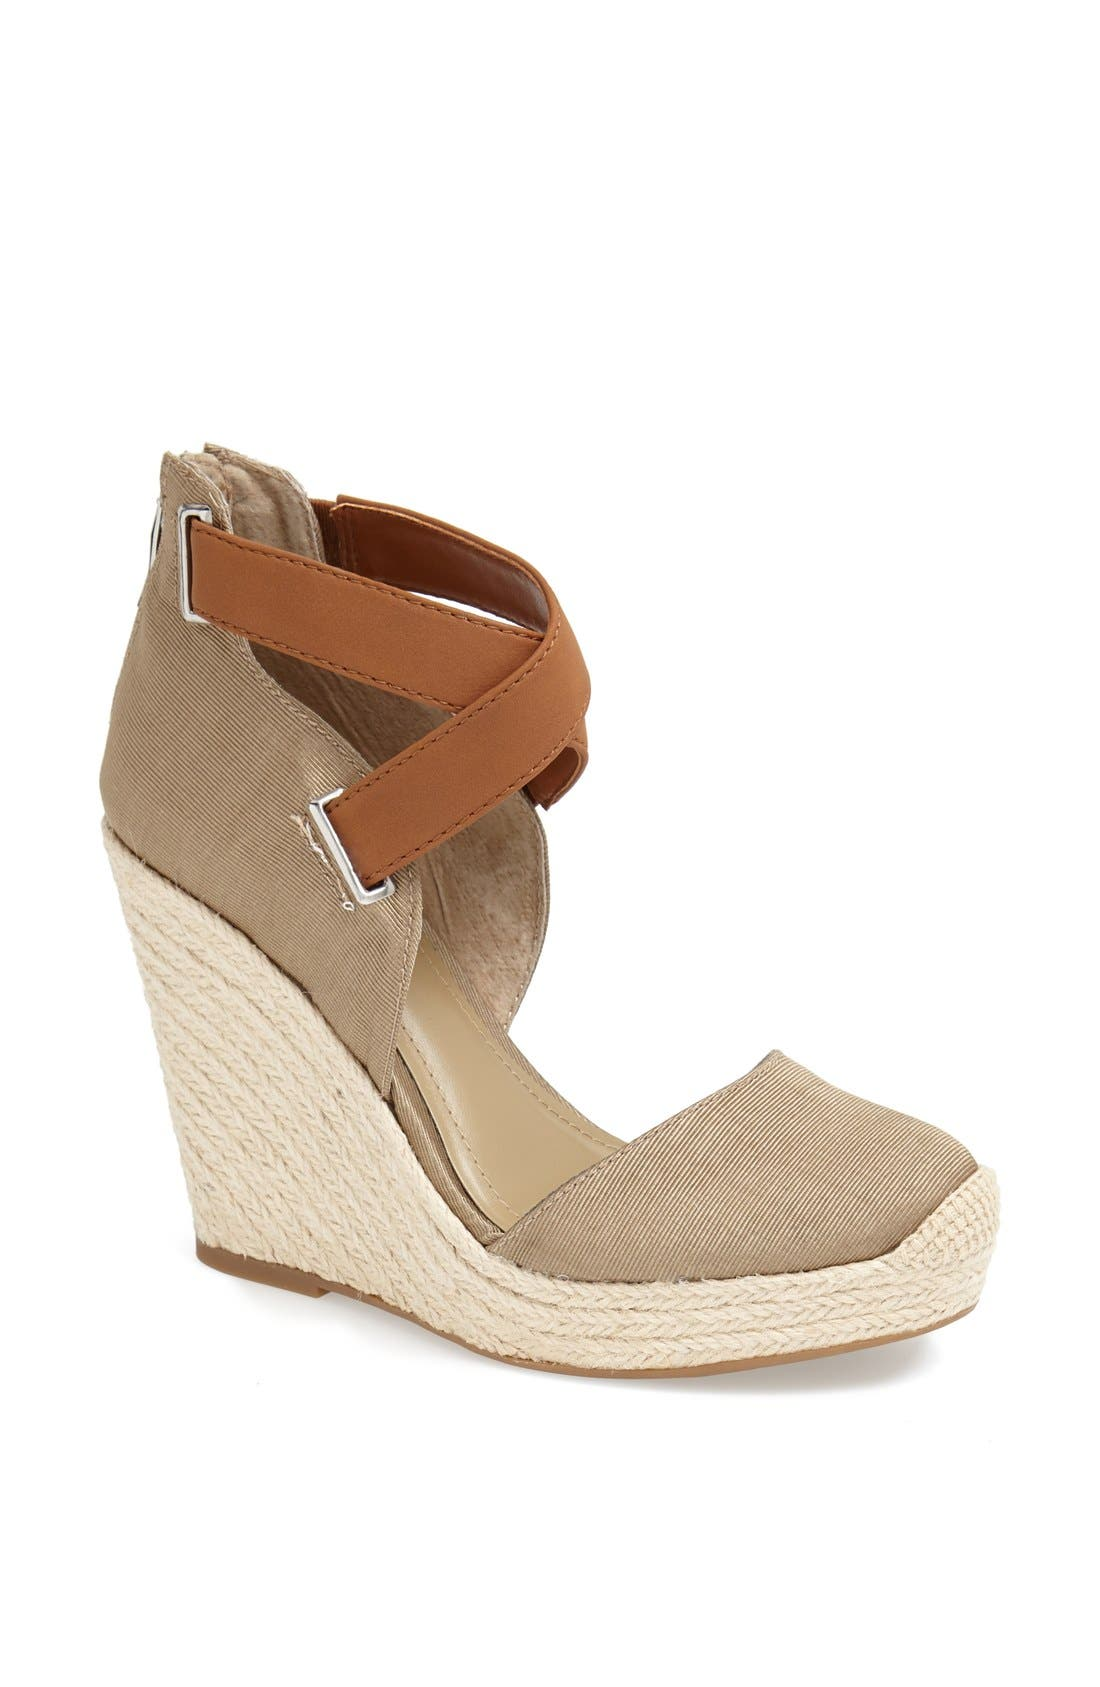 Alternate Image 1 Selected - BCBGeneration 'Glenda' Espadrille Wedge Sandal